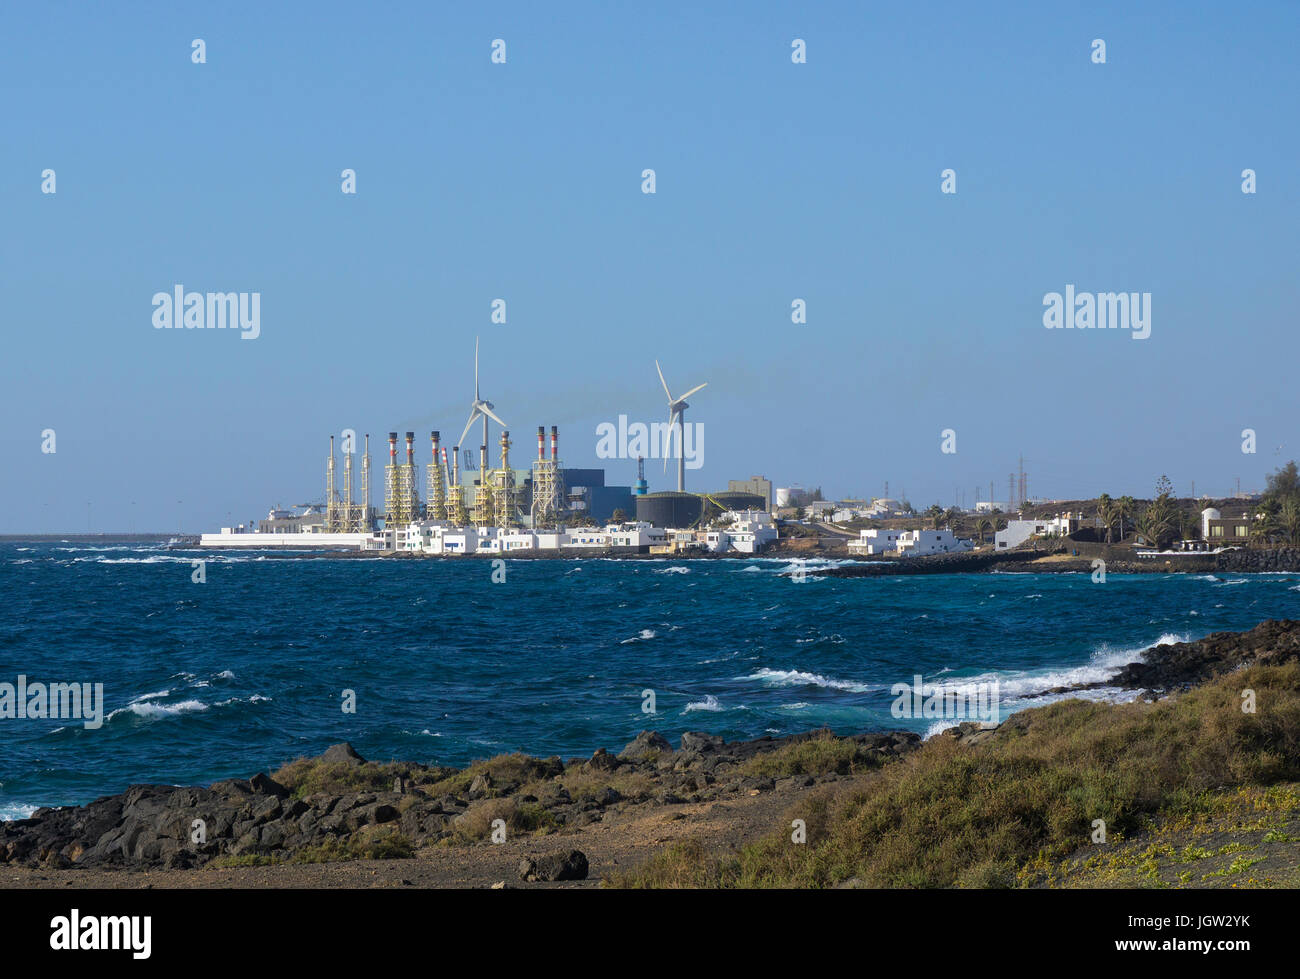 View from rocky coast of Teguise on desalination facility of Arrecife, Canary islands, Spain, Europe Stock Photo